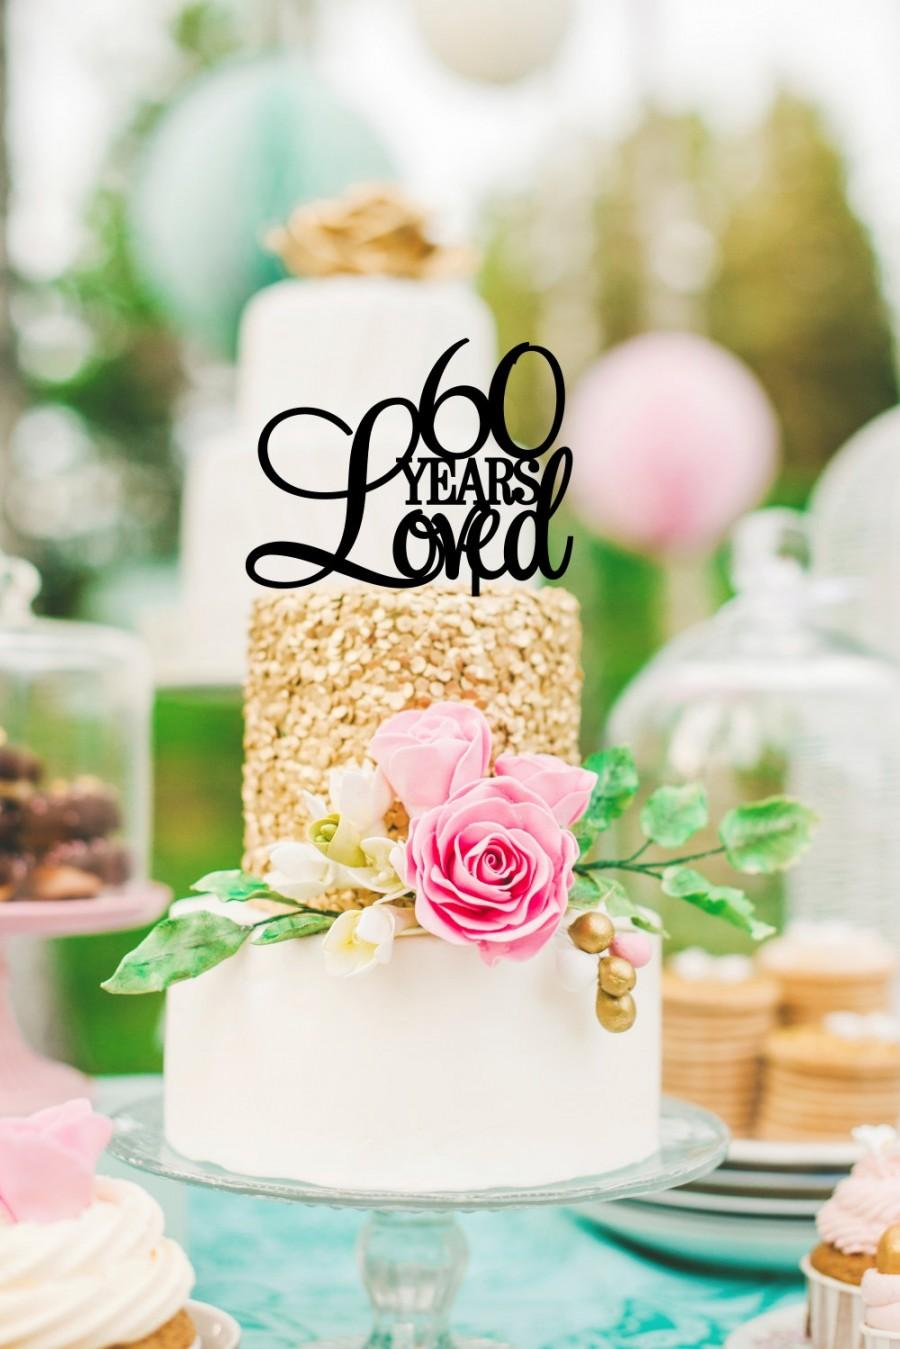 60 Years Loved Cake Topper - Birthday Cake Topper Or 60th ...